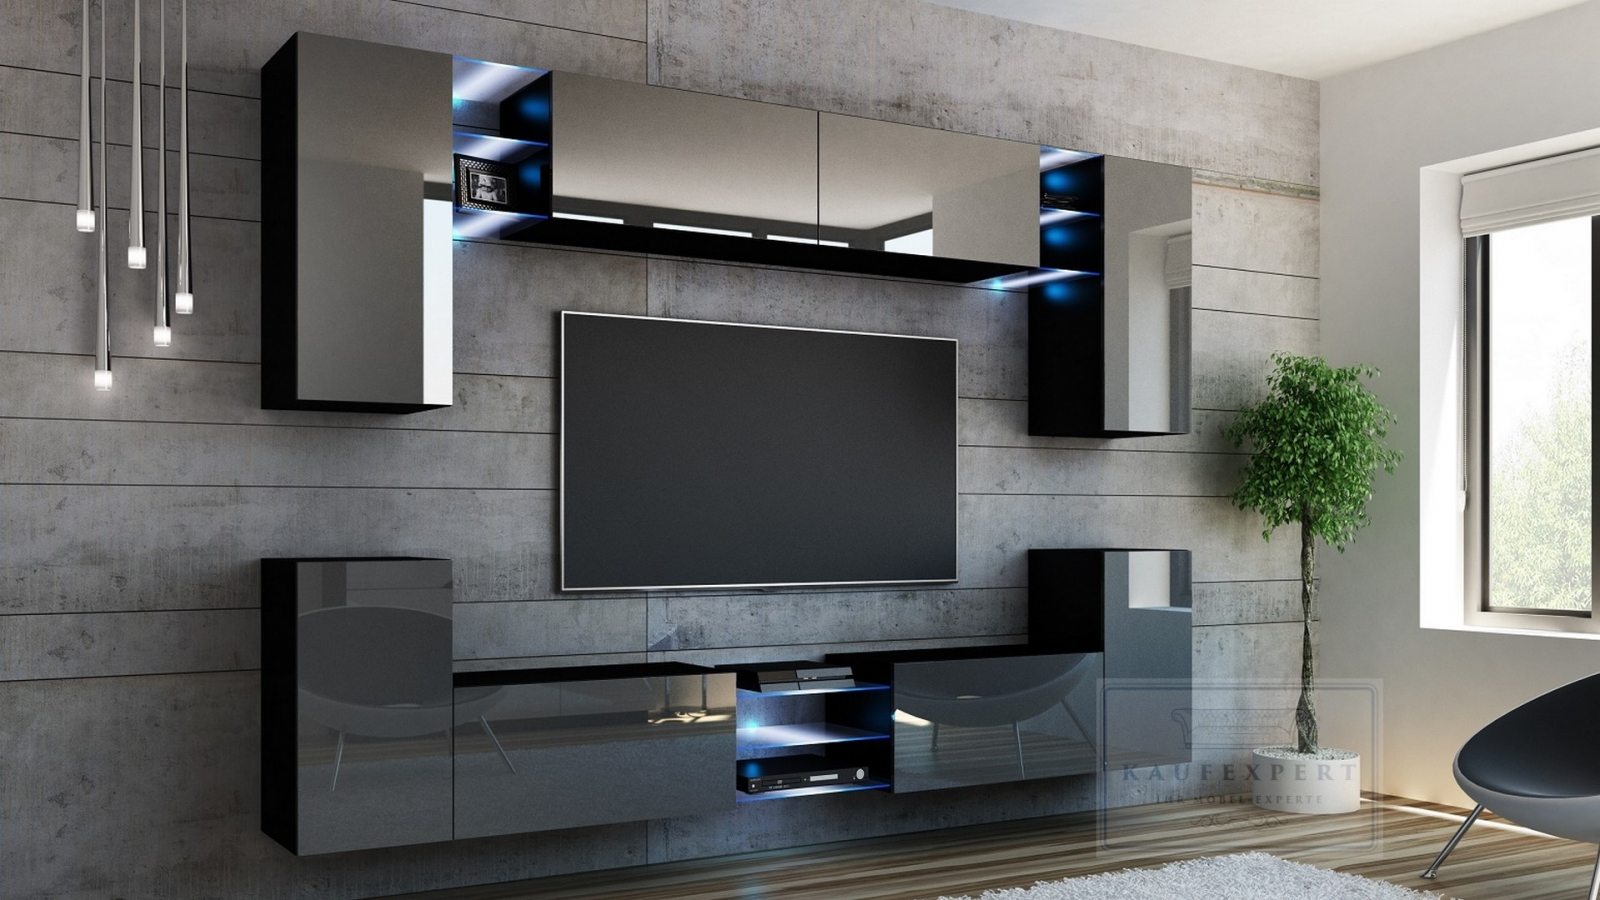 kaufexpert wohnwand galaxy grau hochglanz schwarz mediawand medienwand design modern led. Black Bedroom Furniture Sets. Home Design Ideas